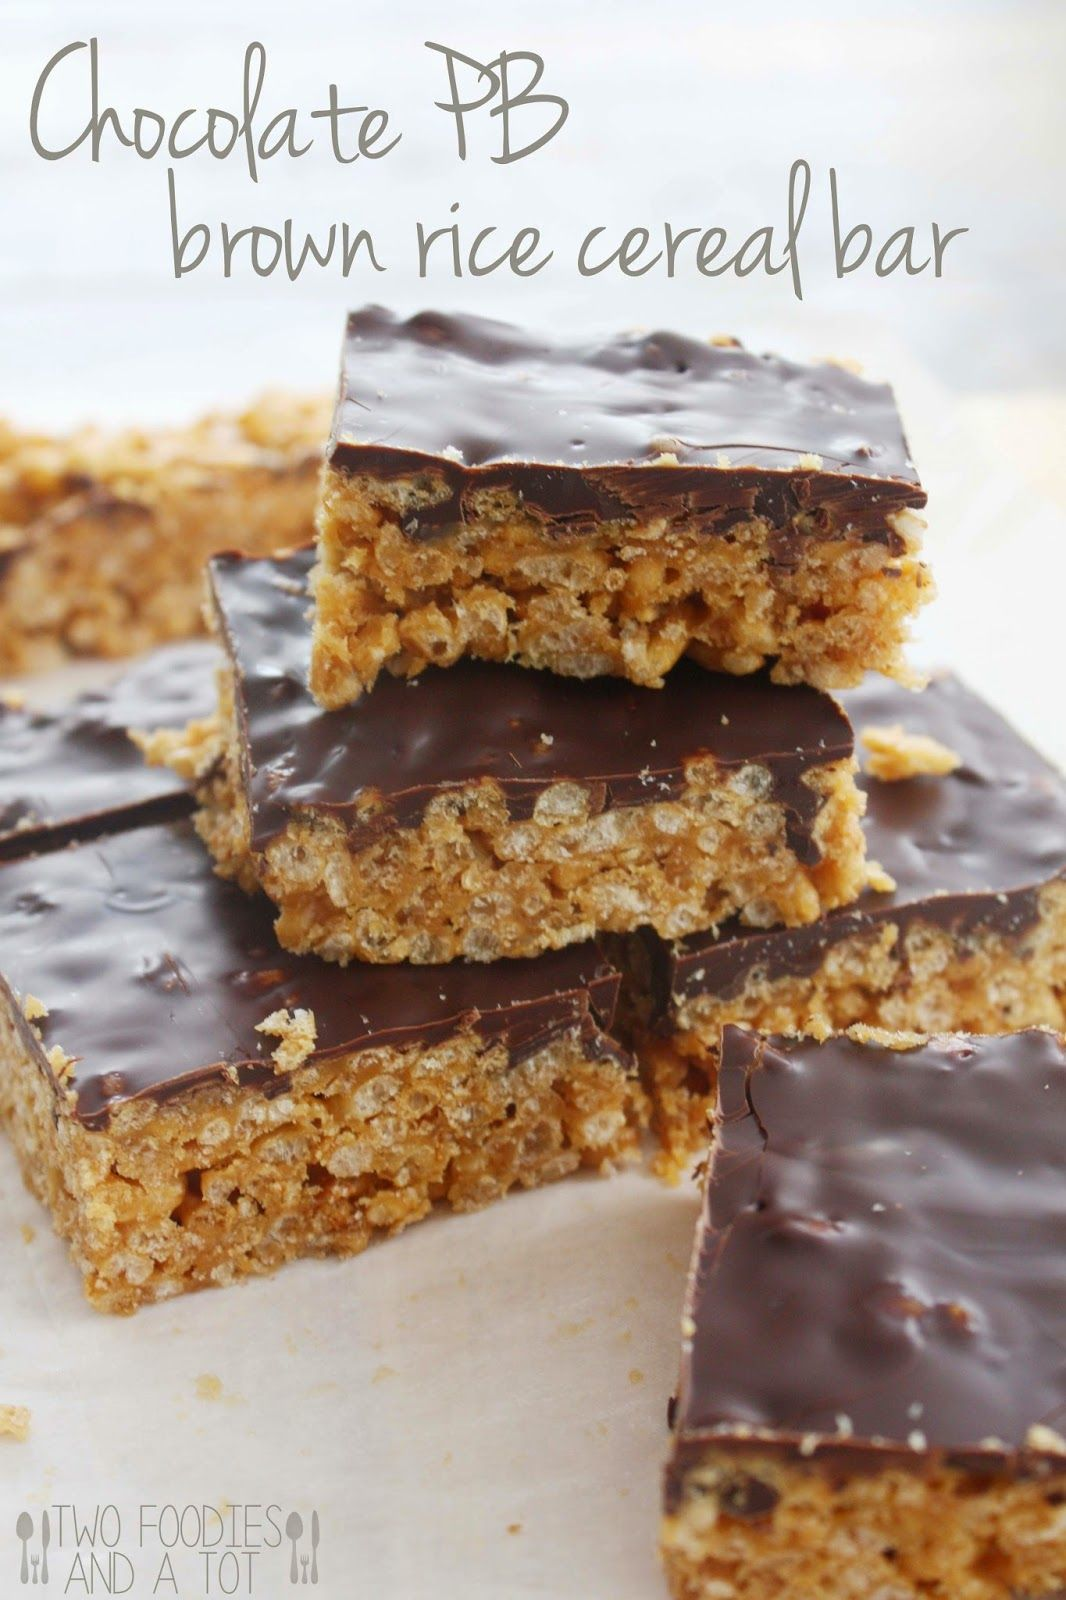 Chocolate peanut butter brown rice cereal bar